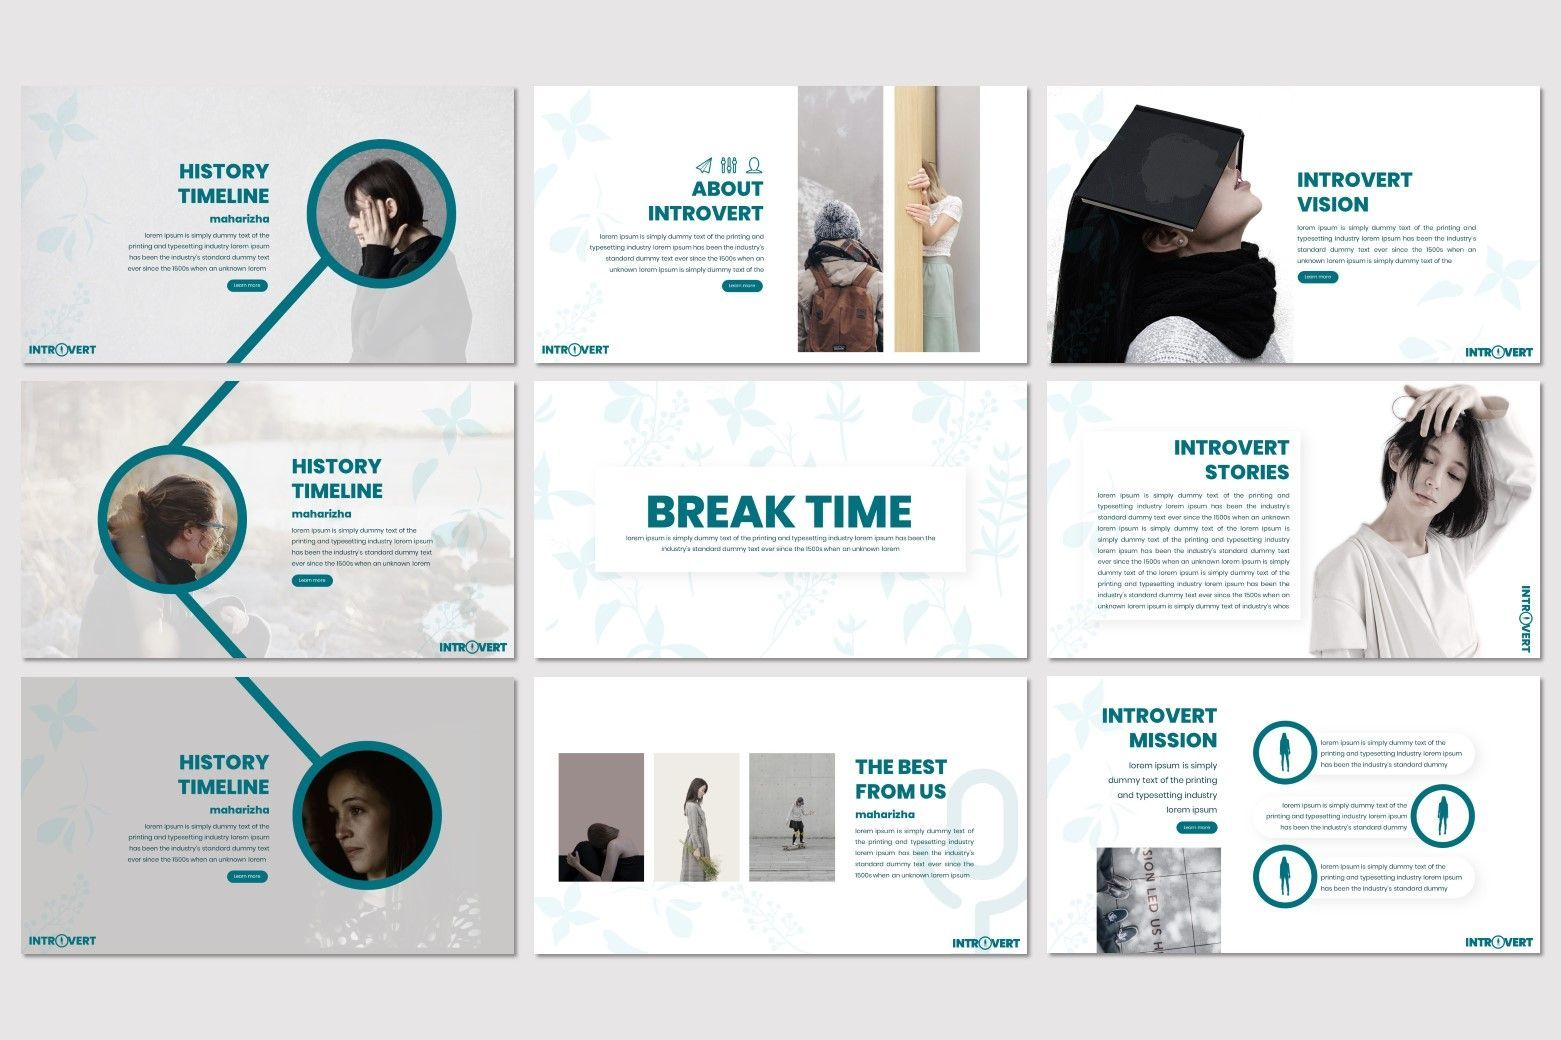 Introvert - PowerPoint Template, Slide 3, 07629, Presentation Templates — PoweredTemplate.com